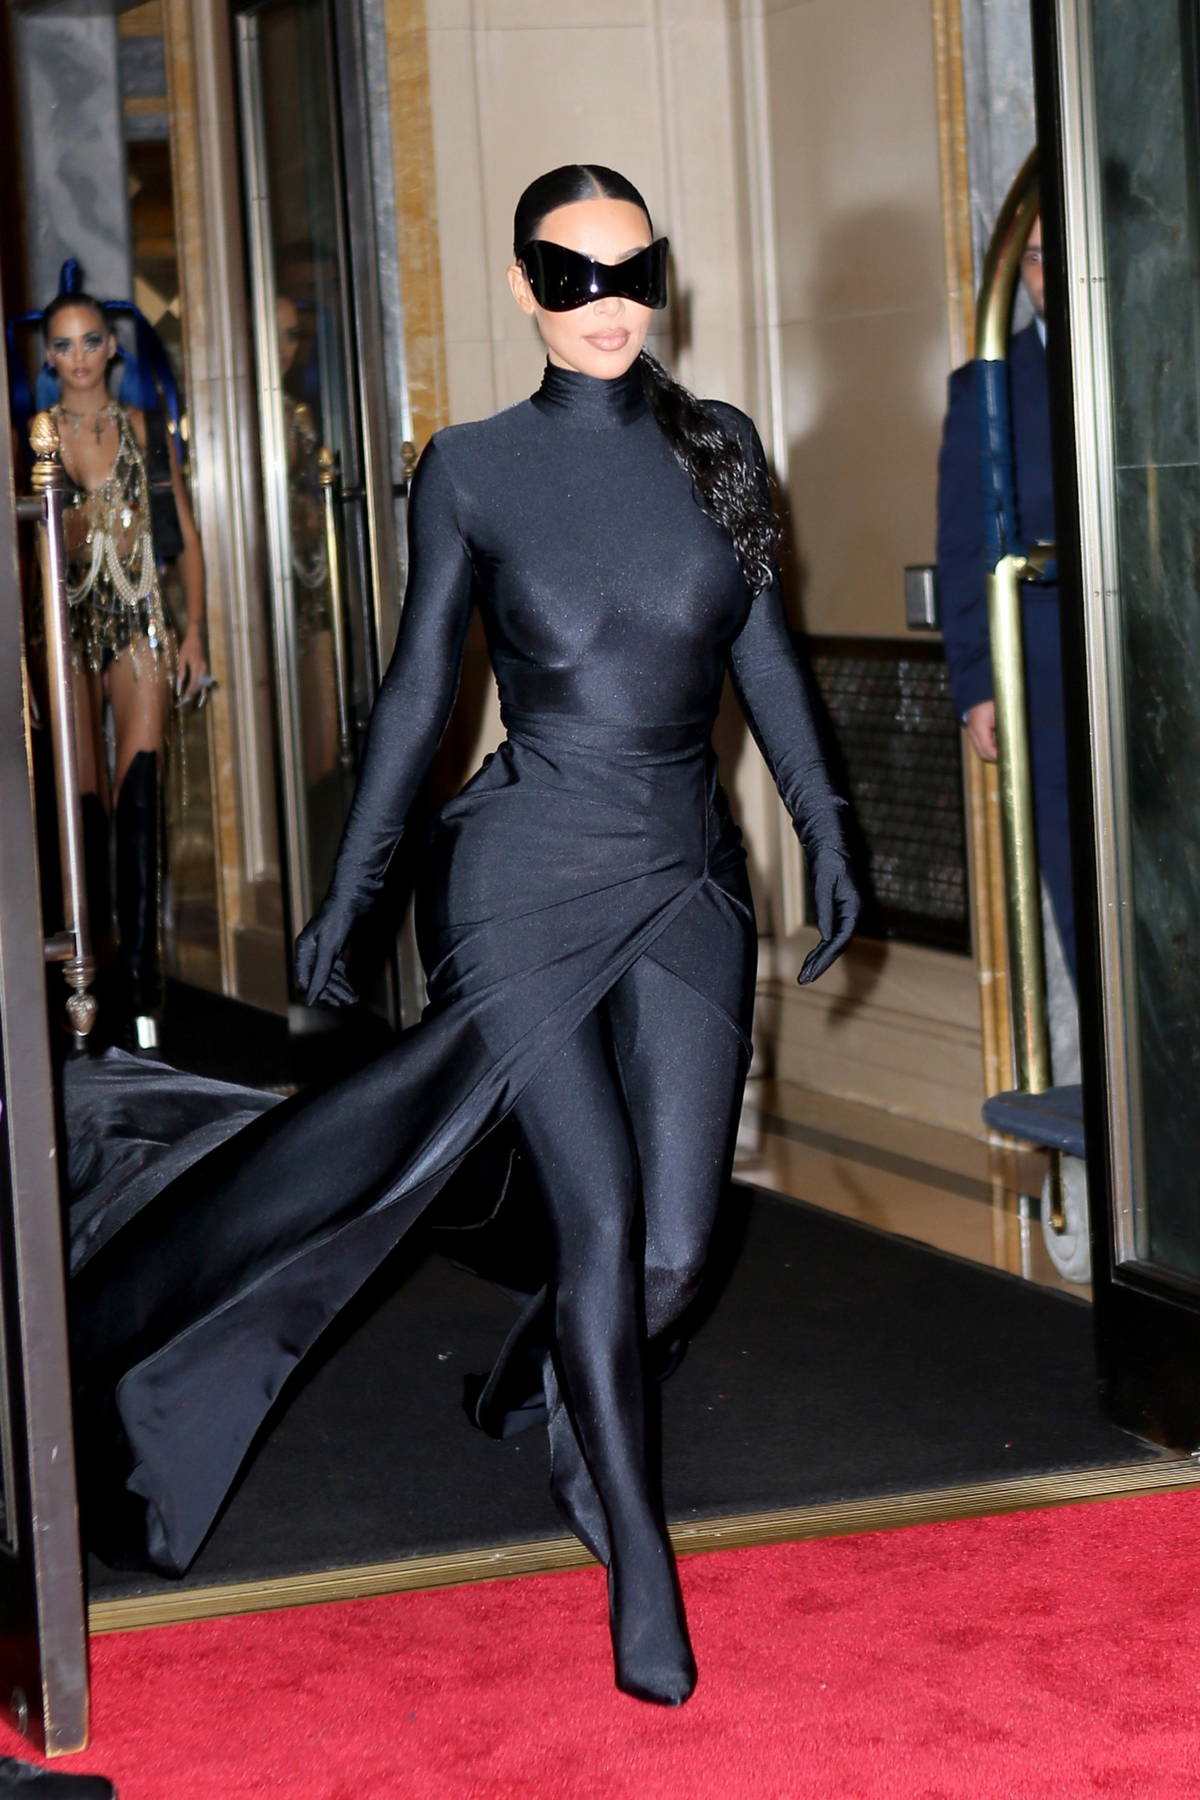 Kim Kardashian showcases her all-black futuristic look while heading out for a Met Gala after-party in New York City